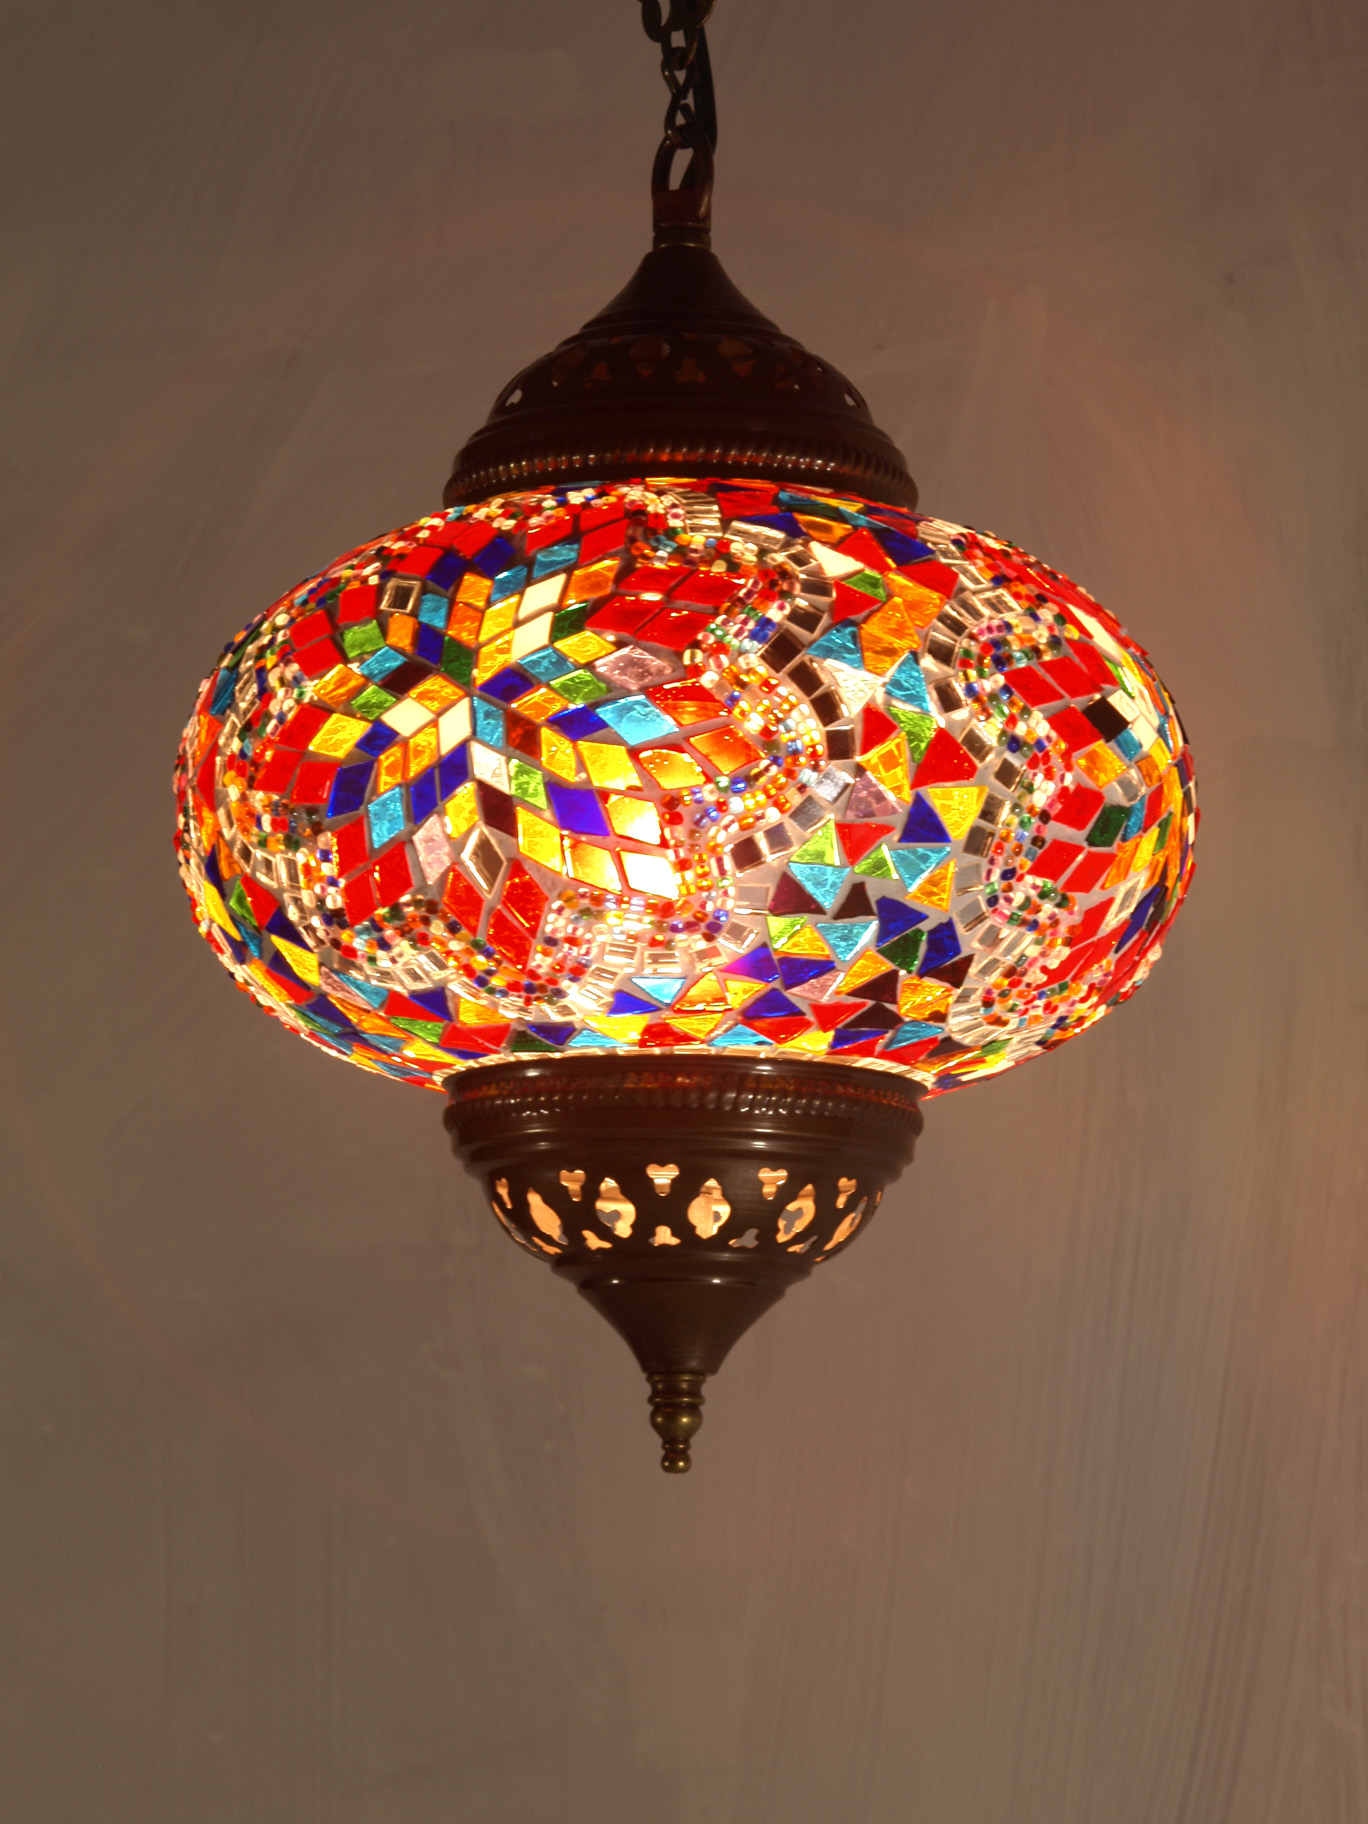 Mosaic Ceiling Light Your Gateway To A Masterful